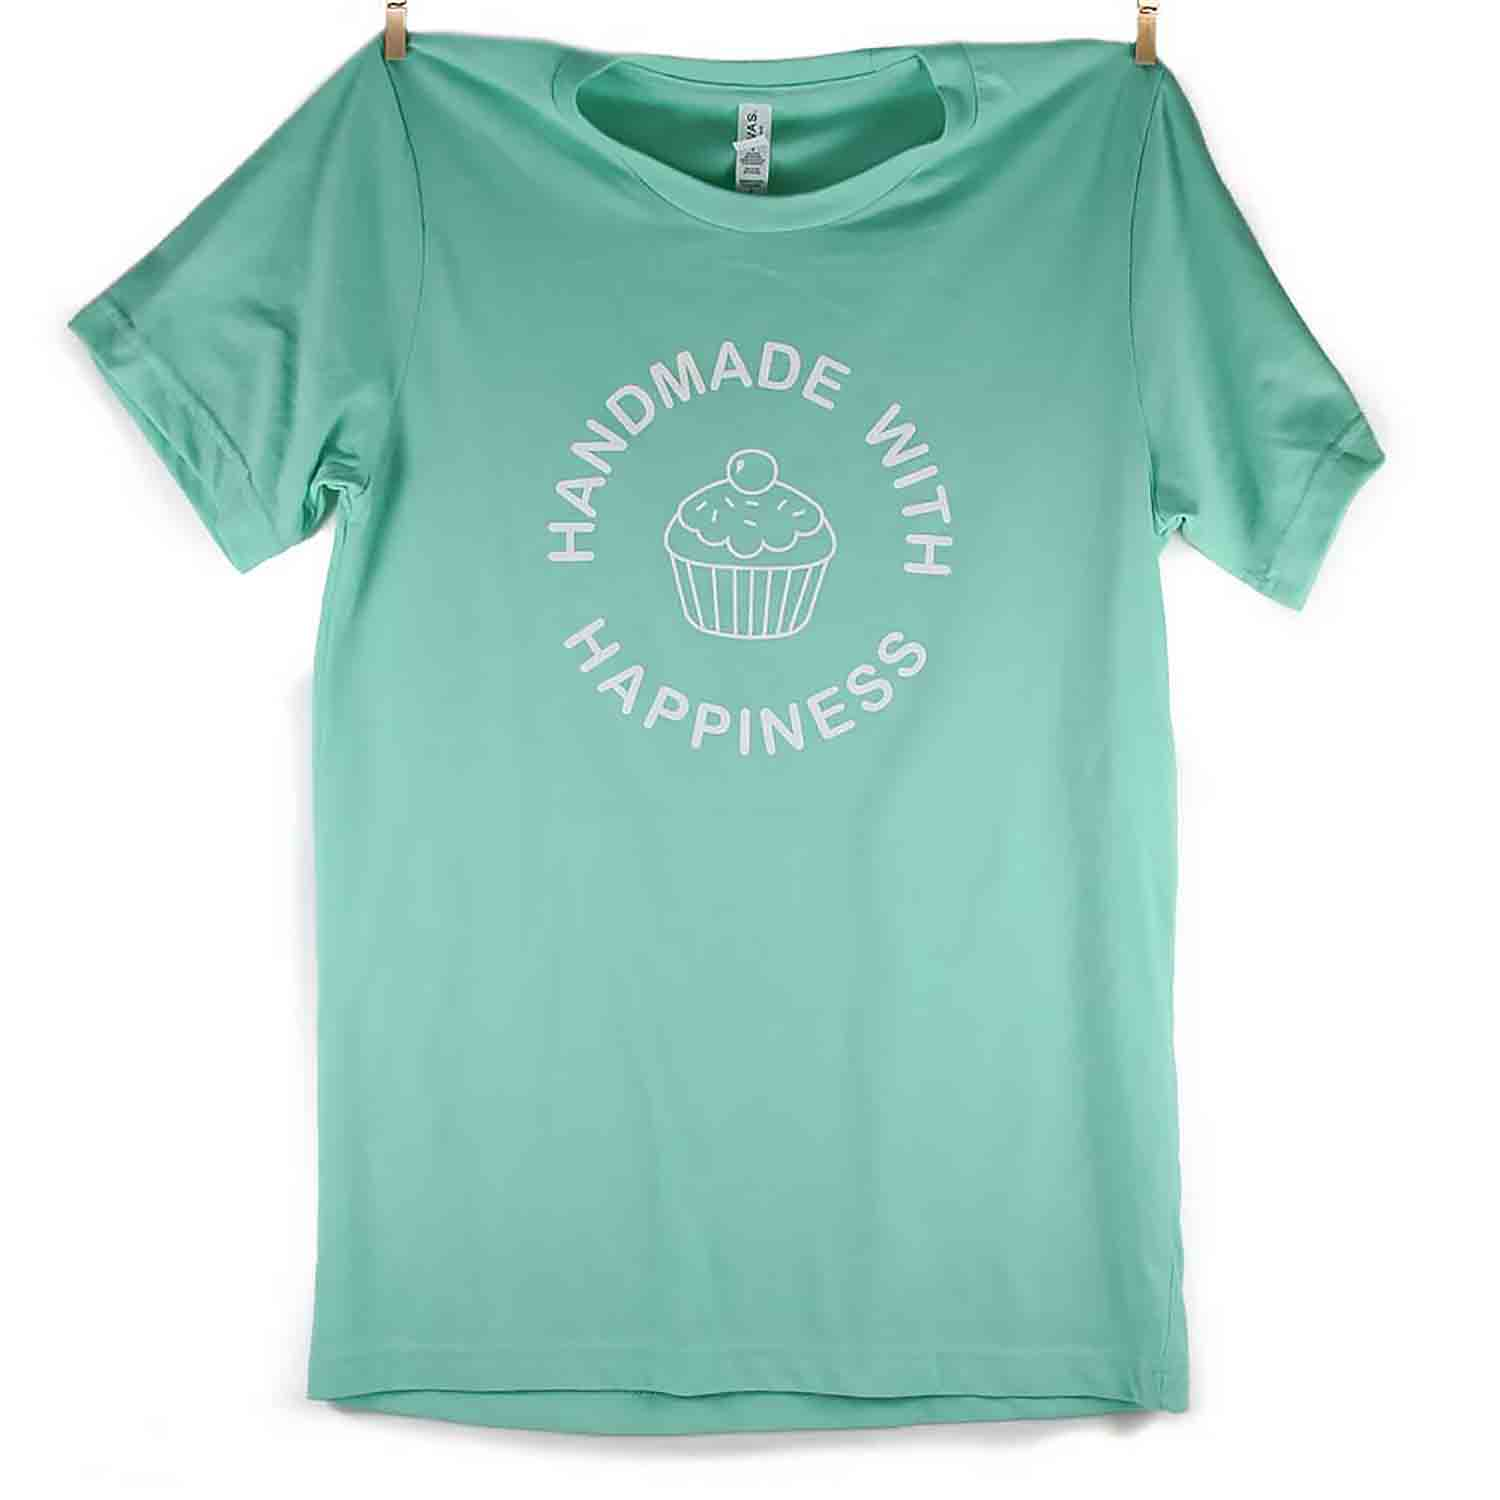 Mint Handmade with Happiness T-Shirt - Double Extra Large